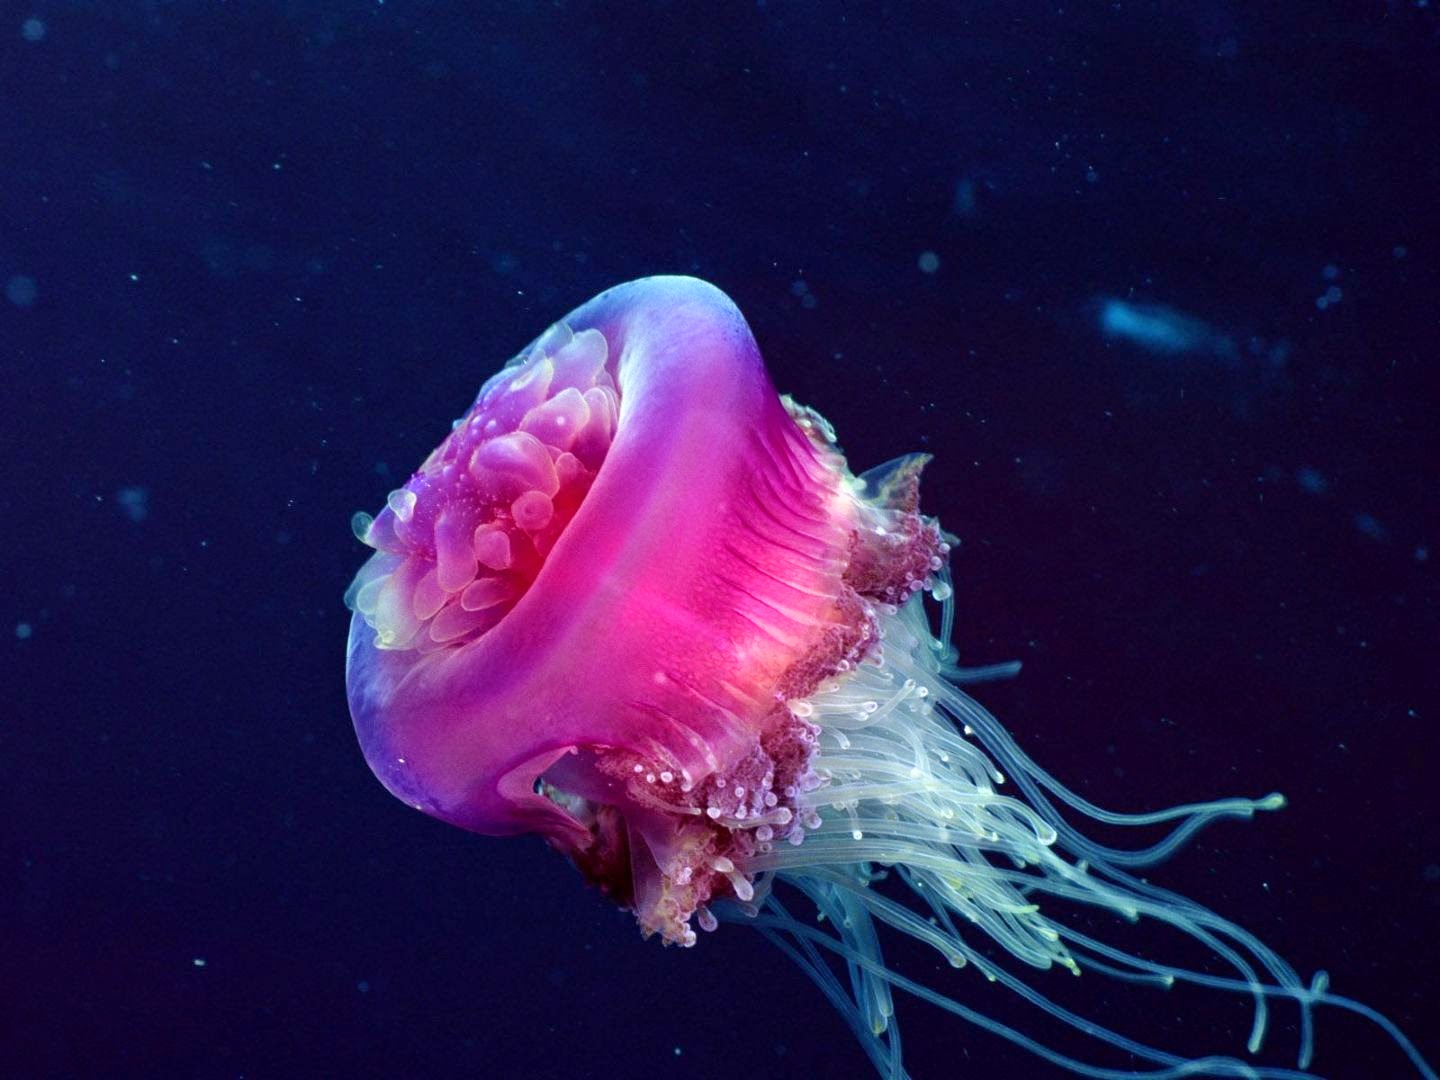 Jellyfish hd wallpapers earth blog for Fish in jellyfish